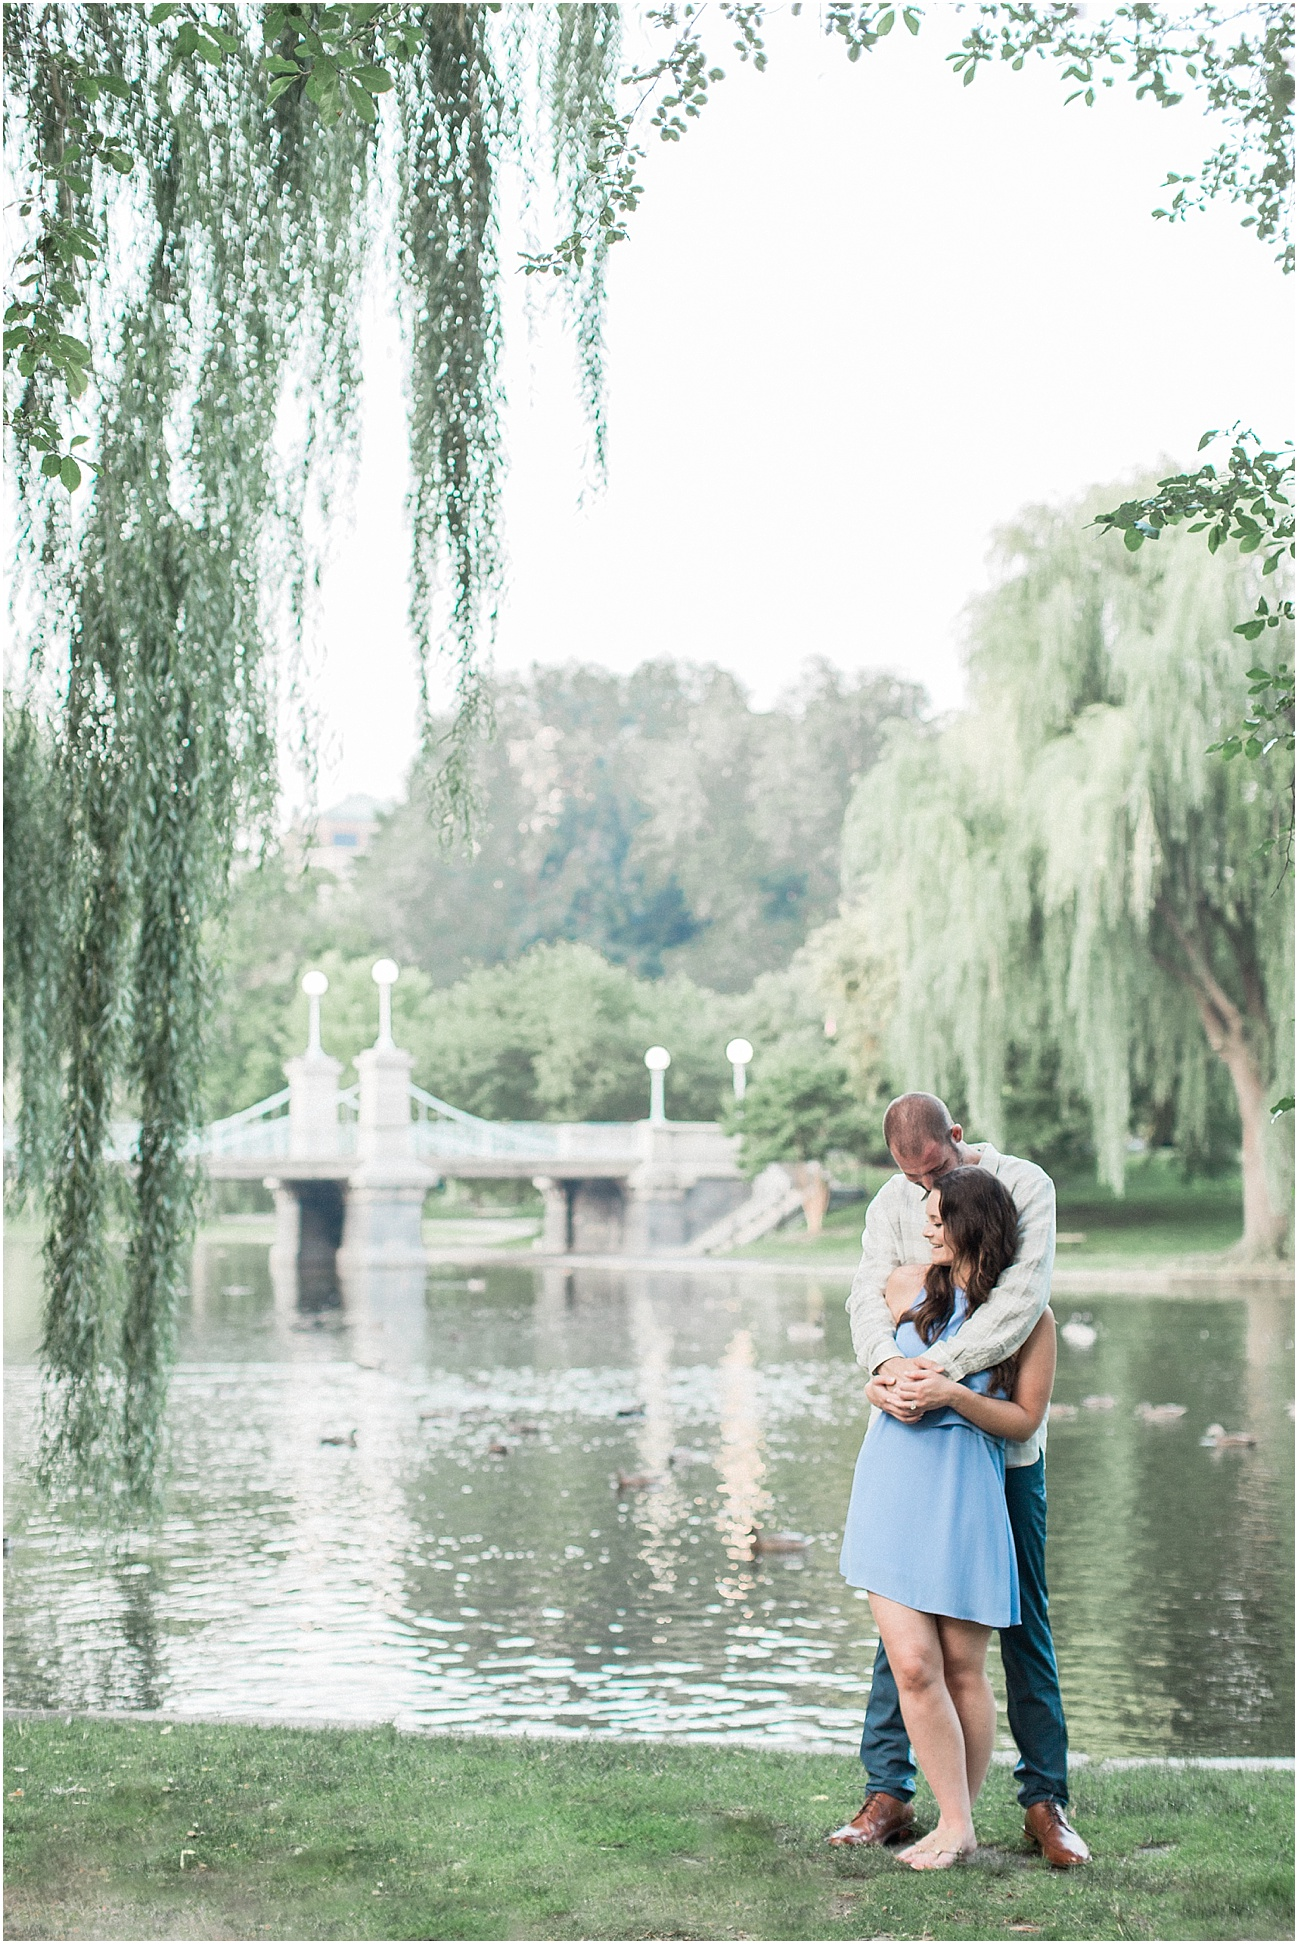 christina_frank_common_engagement_acorn_street_back_bay_cape_cod_boston_wedding_photographer_meredith_jane_photography_photo_0707.jpg